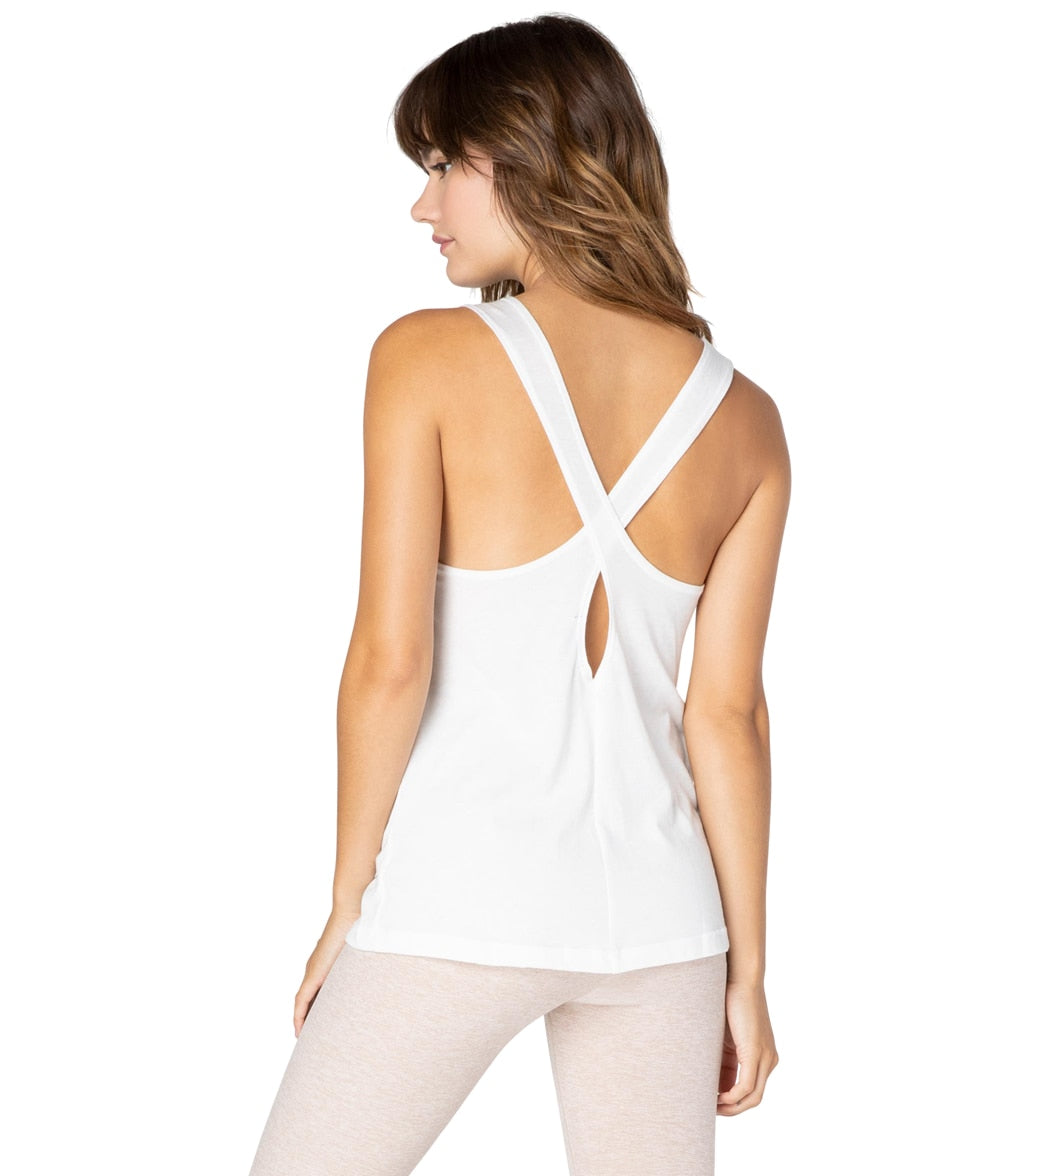 Who doesn\\\'t love a top that you can wear anywhere? The Beyond Yoga Boyfriend Jersey Crossback Yoga Tank can be worn to work out or for going out. You can also throw on a cute blazer if you want to get fancy. FeaturesYoga tank. Solid. Crossover back with keyhole. Relaxed fit. Low hip length. Lightweight. Locally sourced. DetailsFabric: 50% Cotton, 50% Polyester. Color: White or Latte Heather. Style Features: Crossover back with keyhole. Fit: Relaxed. Adjustable: No. Length: Low hip. Care: Machine